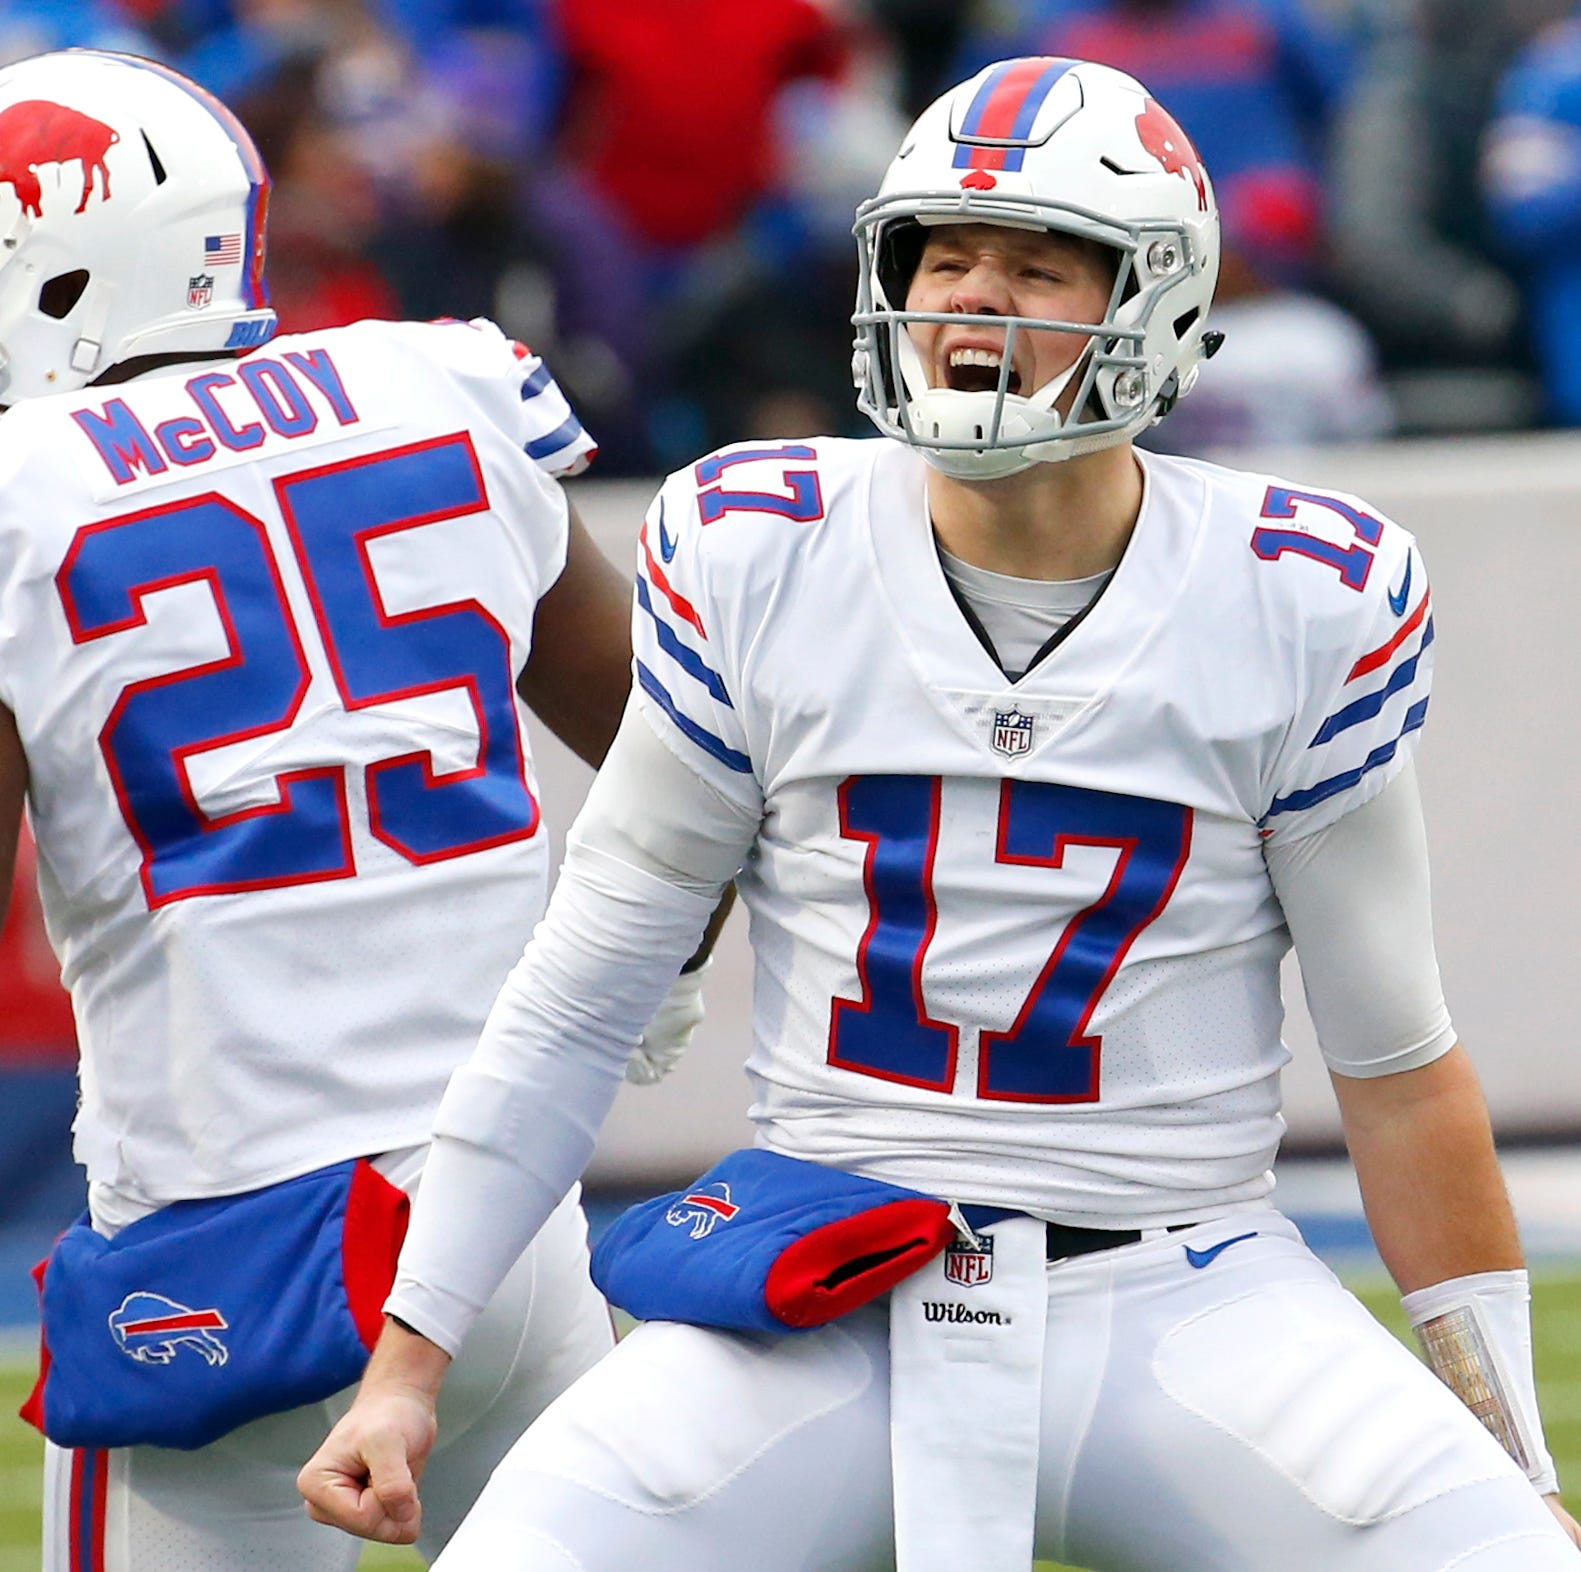 Buffalo Bills 2019 schedule released: Full listing of dates, times, TV, opponents